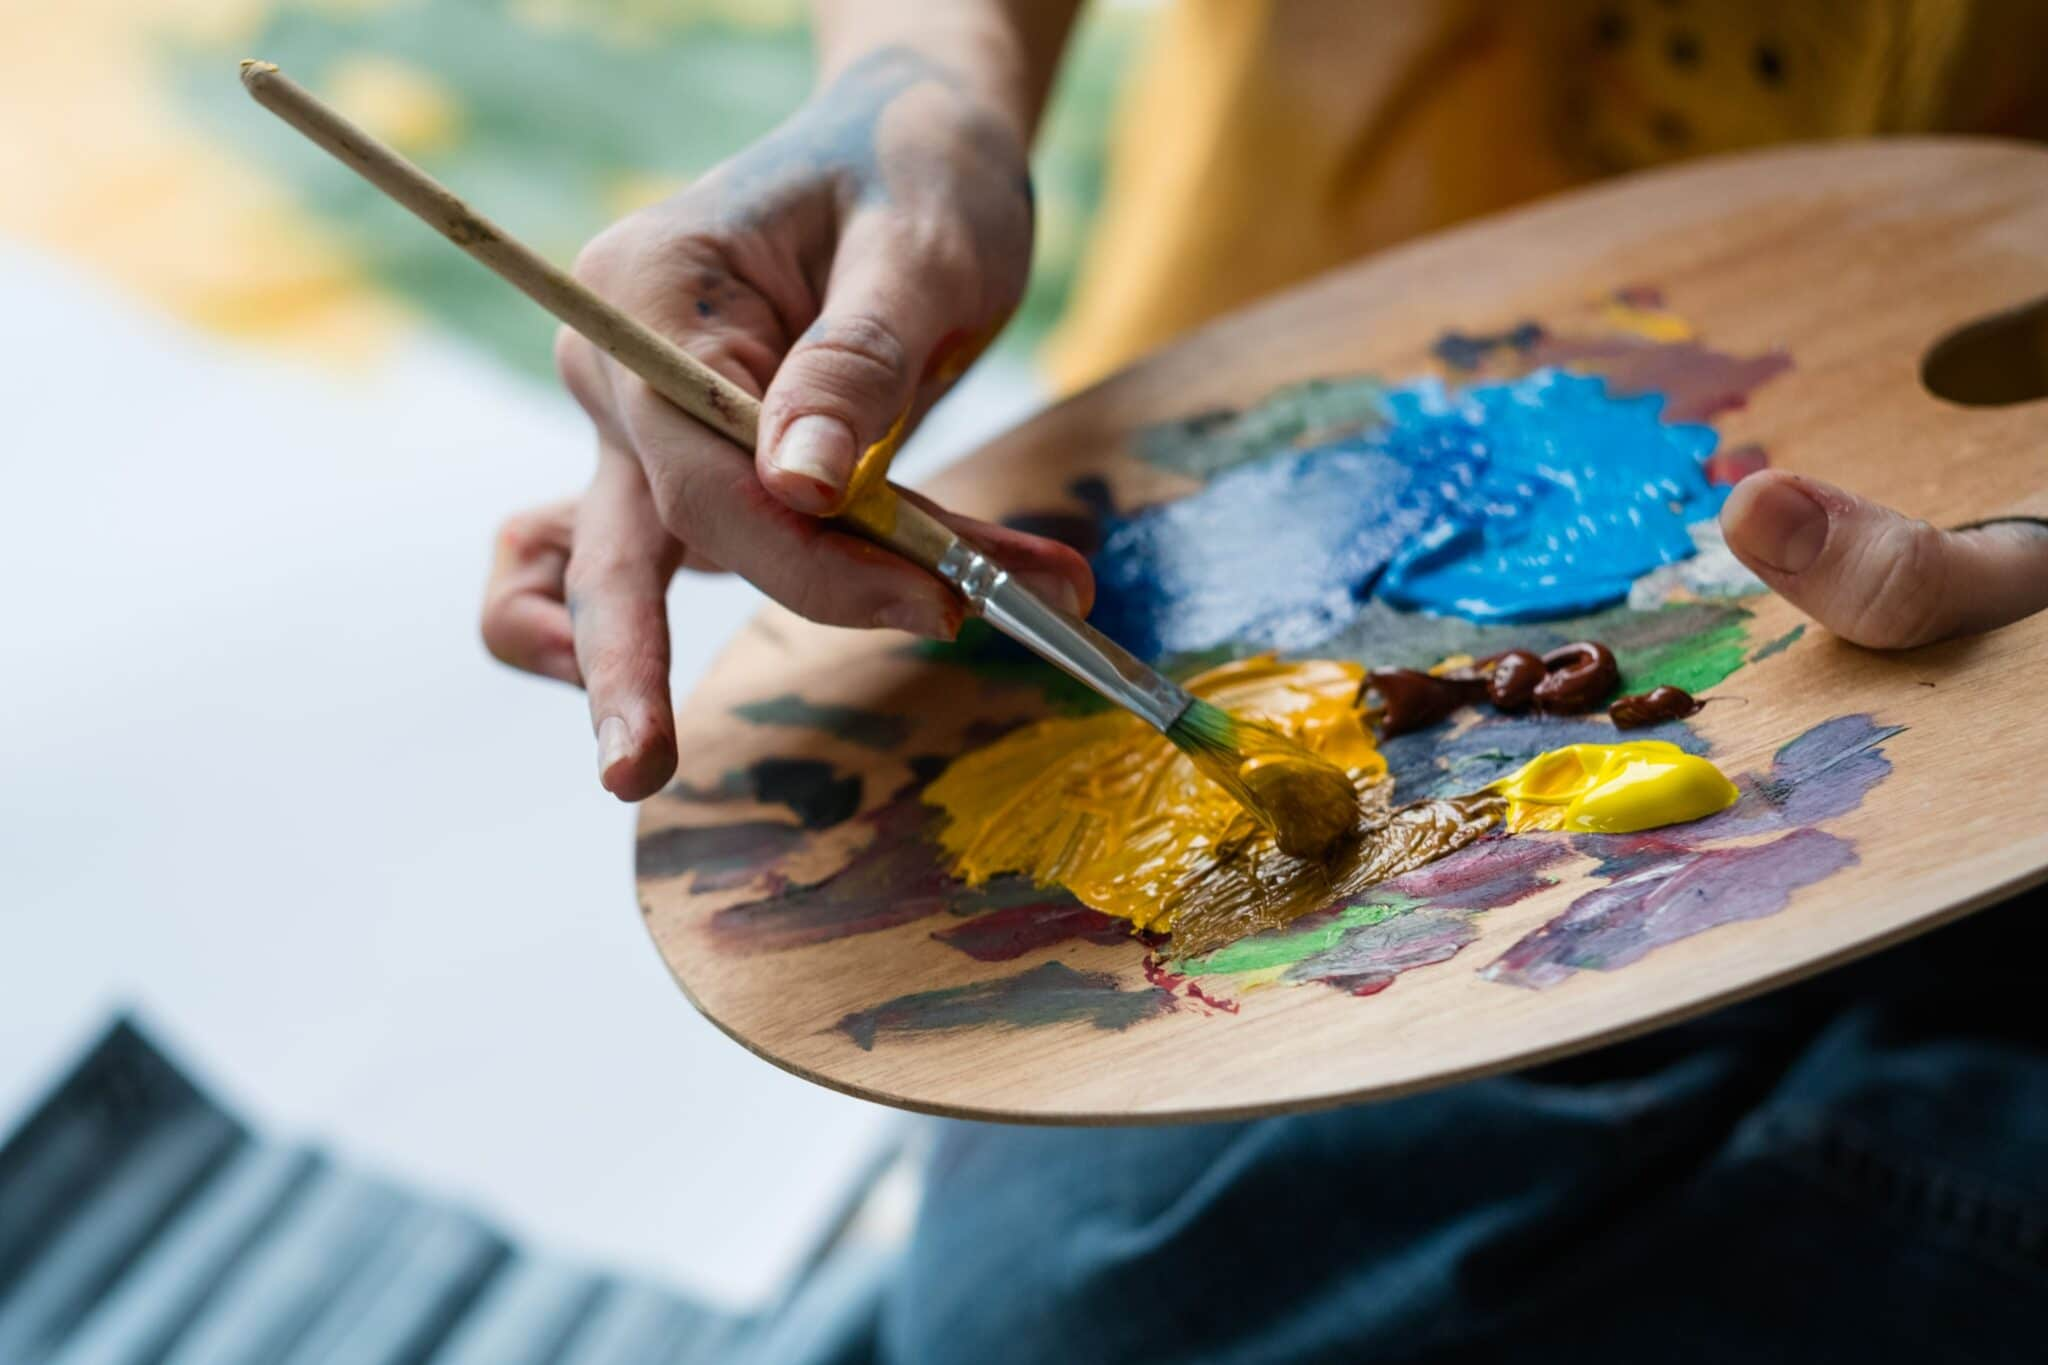 Calming Hobbies To Do At HomeCalming Hobbies To Do At Home